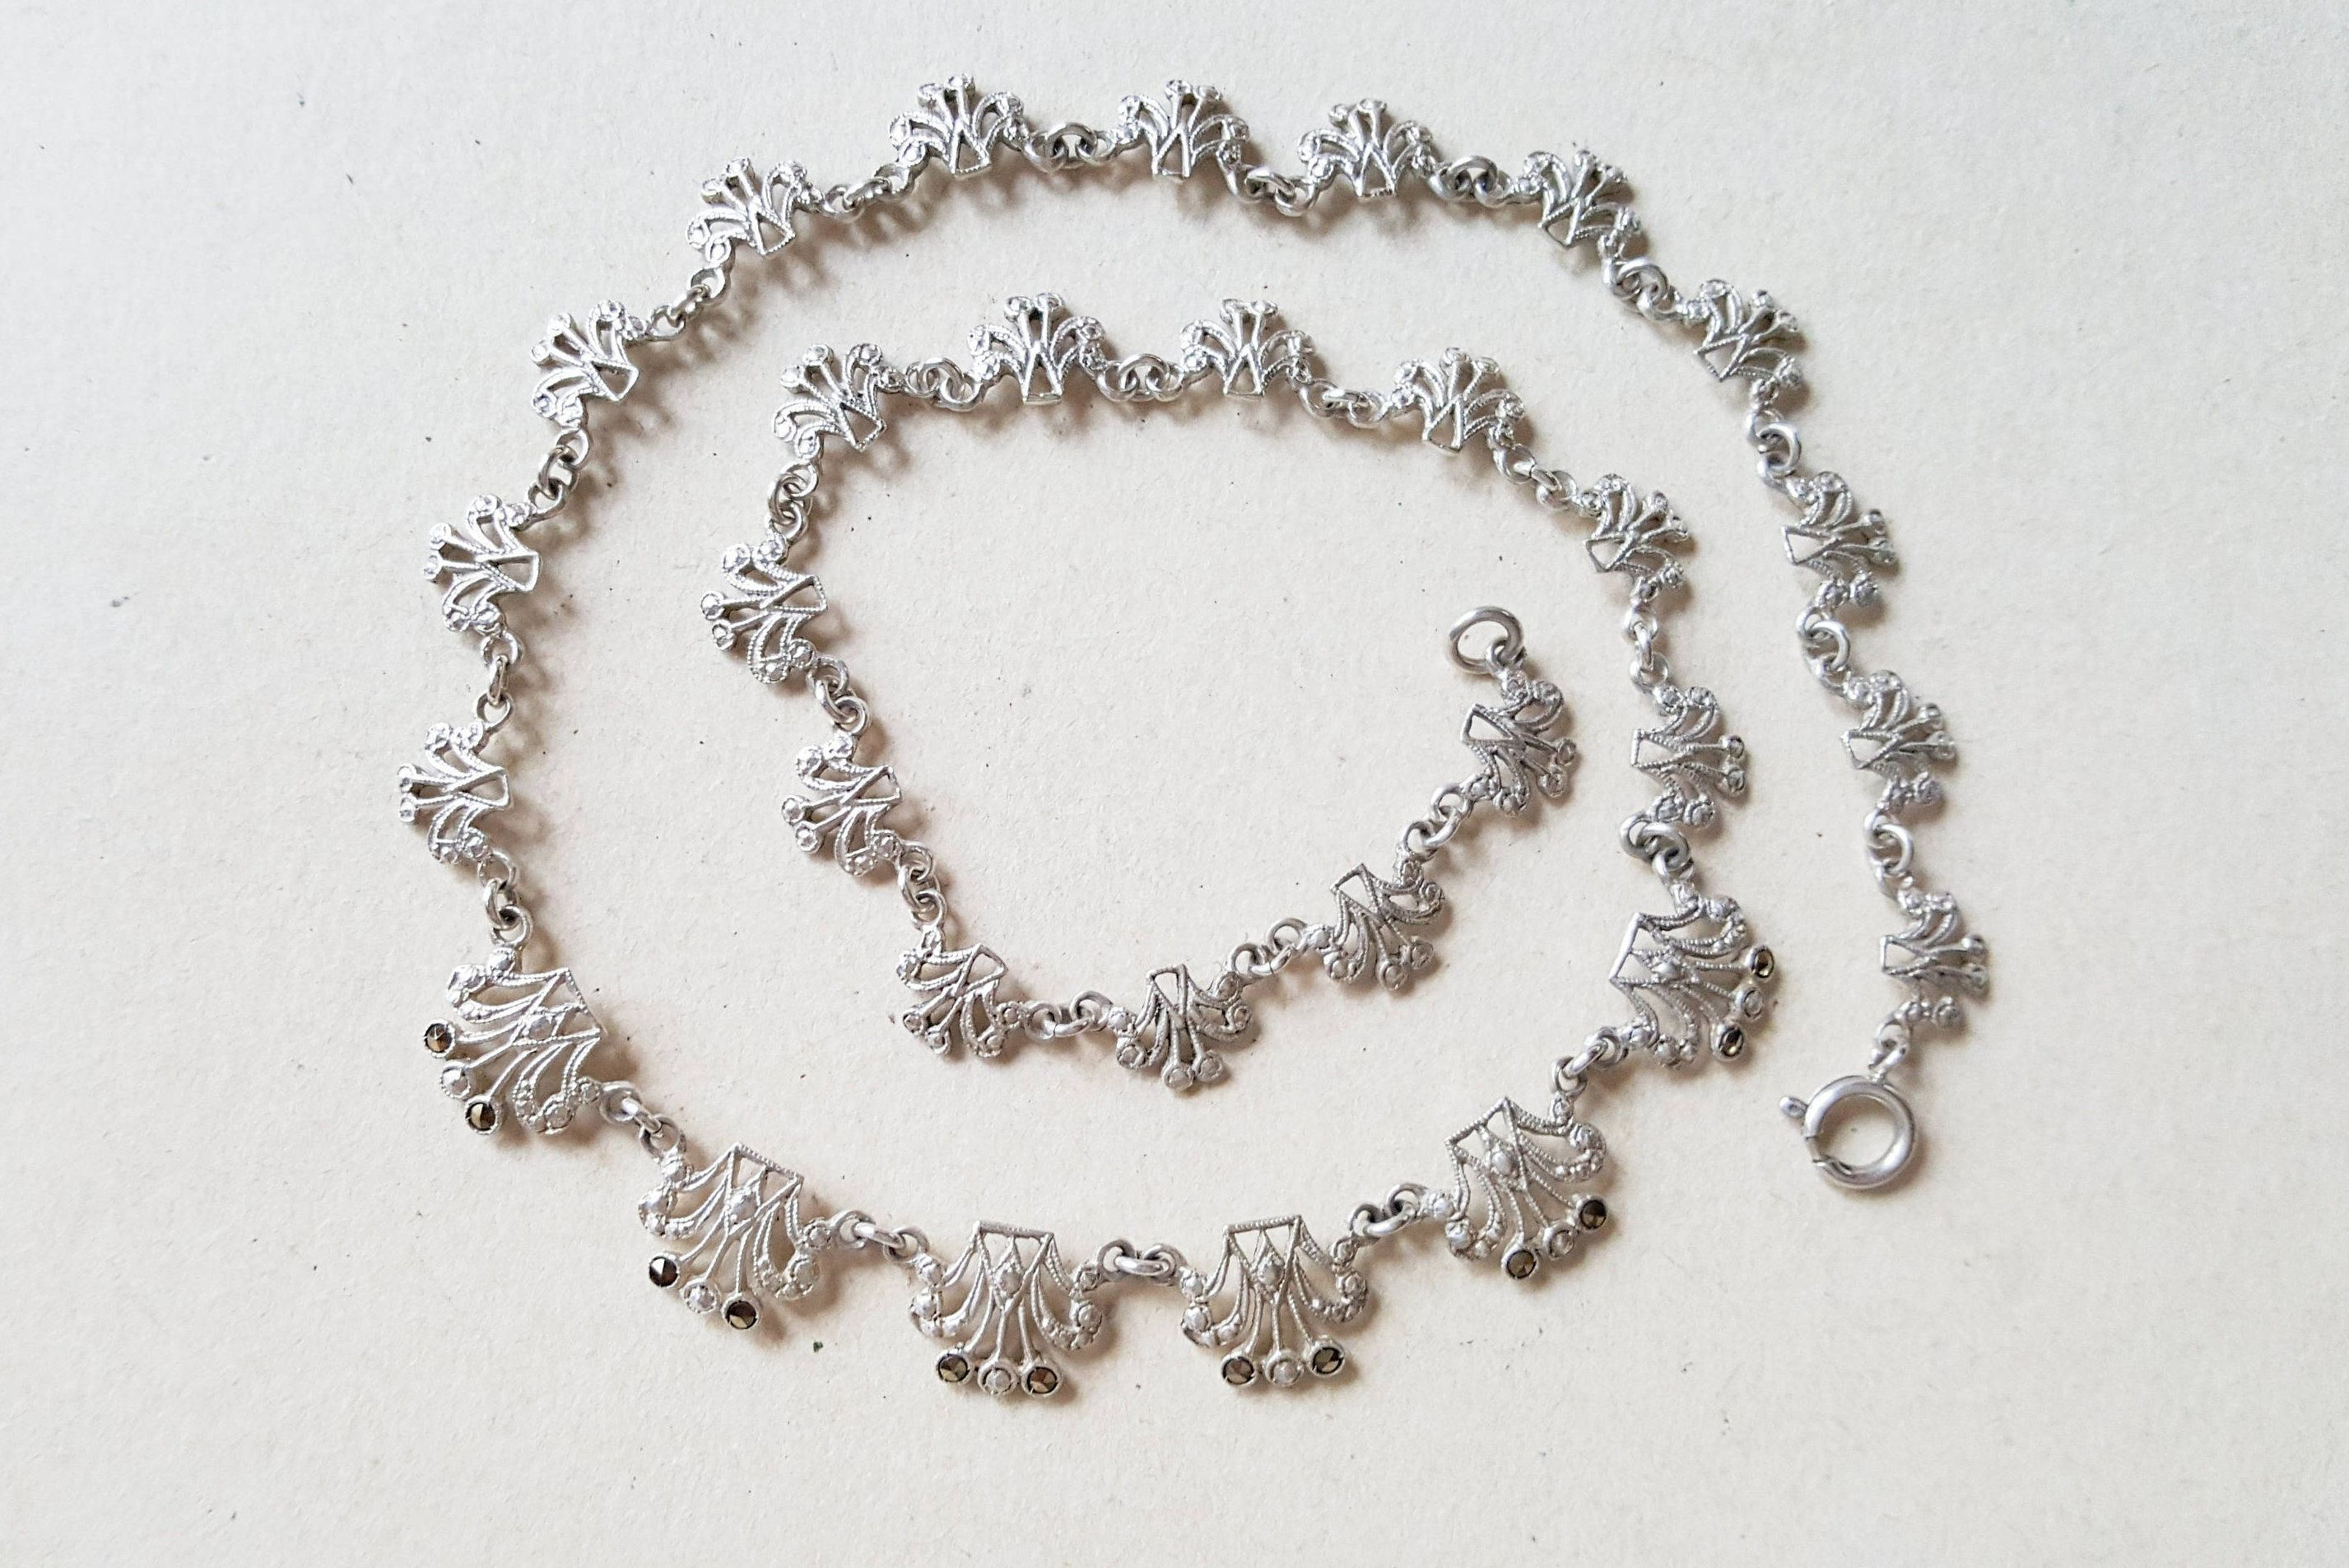 Vintage Silver And Marcasite Collier Necklace, Scandinavia, 1950S Regarding Recent Vintage Circle Collier Necklaces (Gallery 5 of 25)